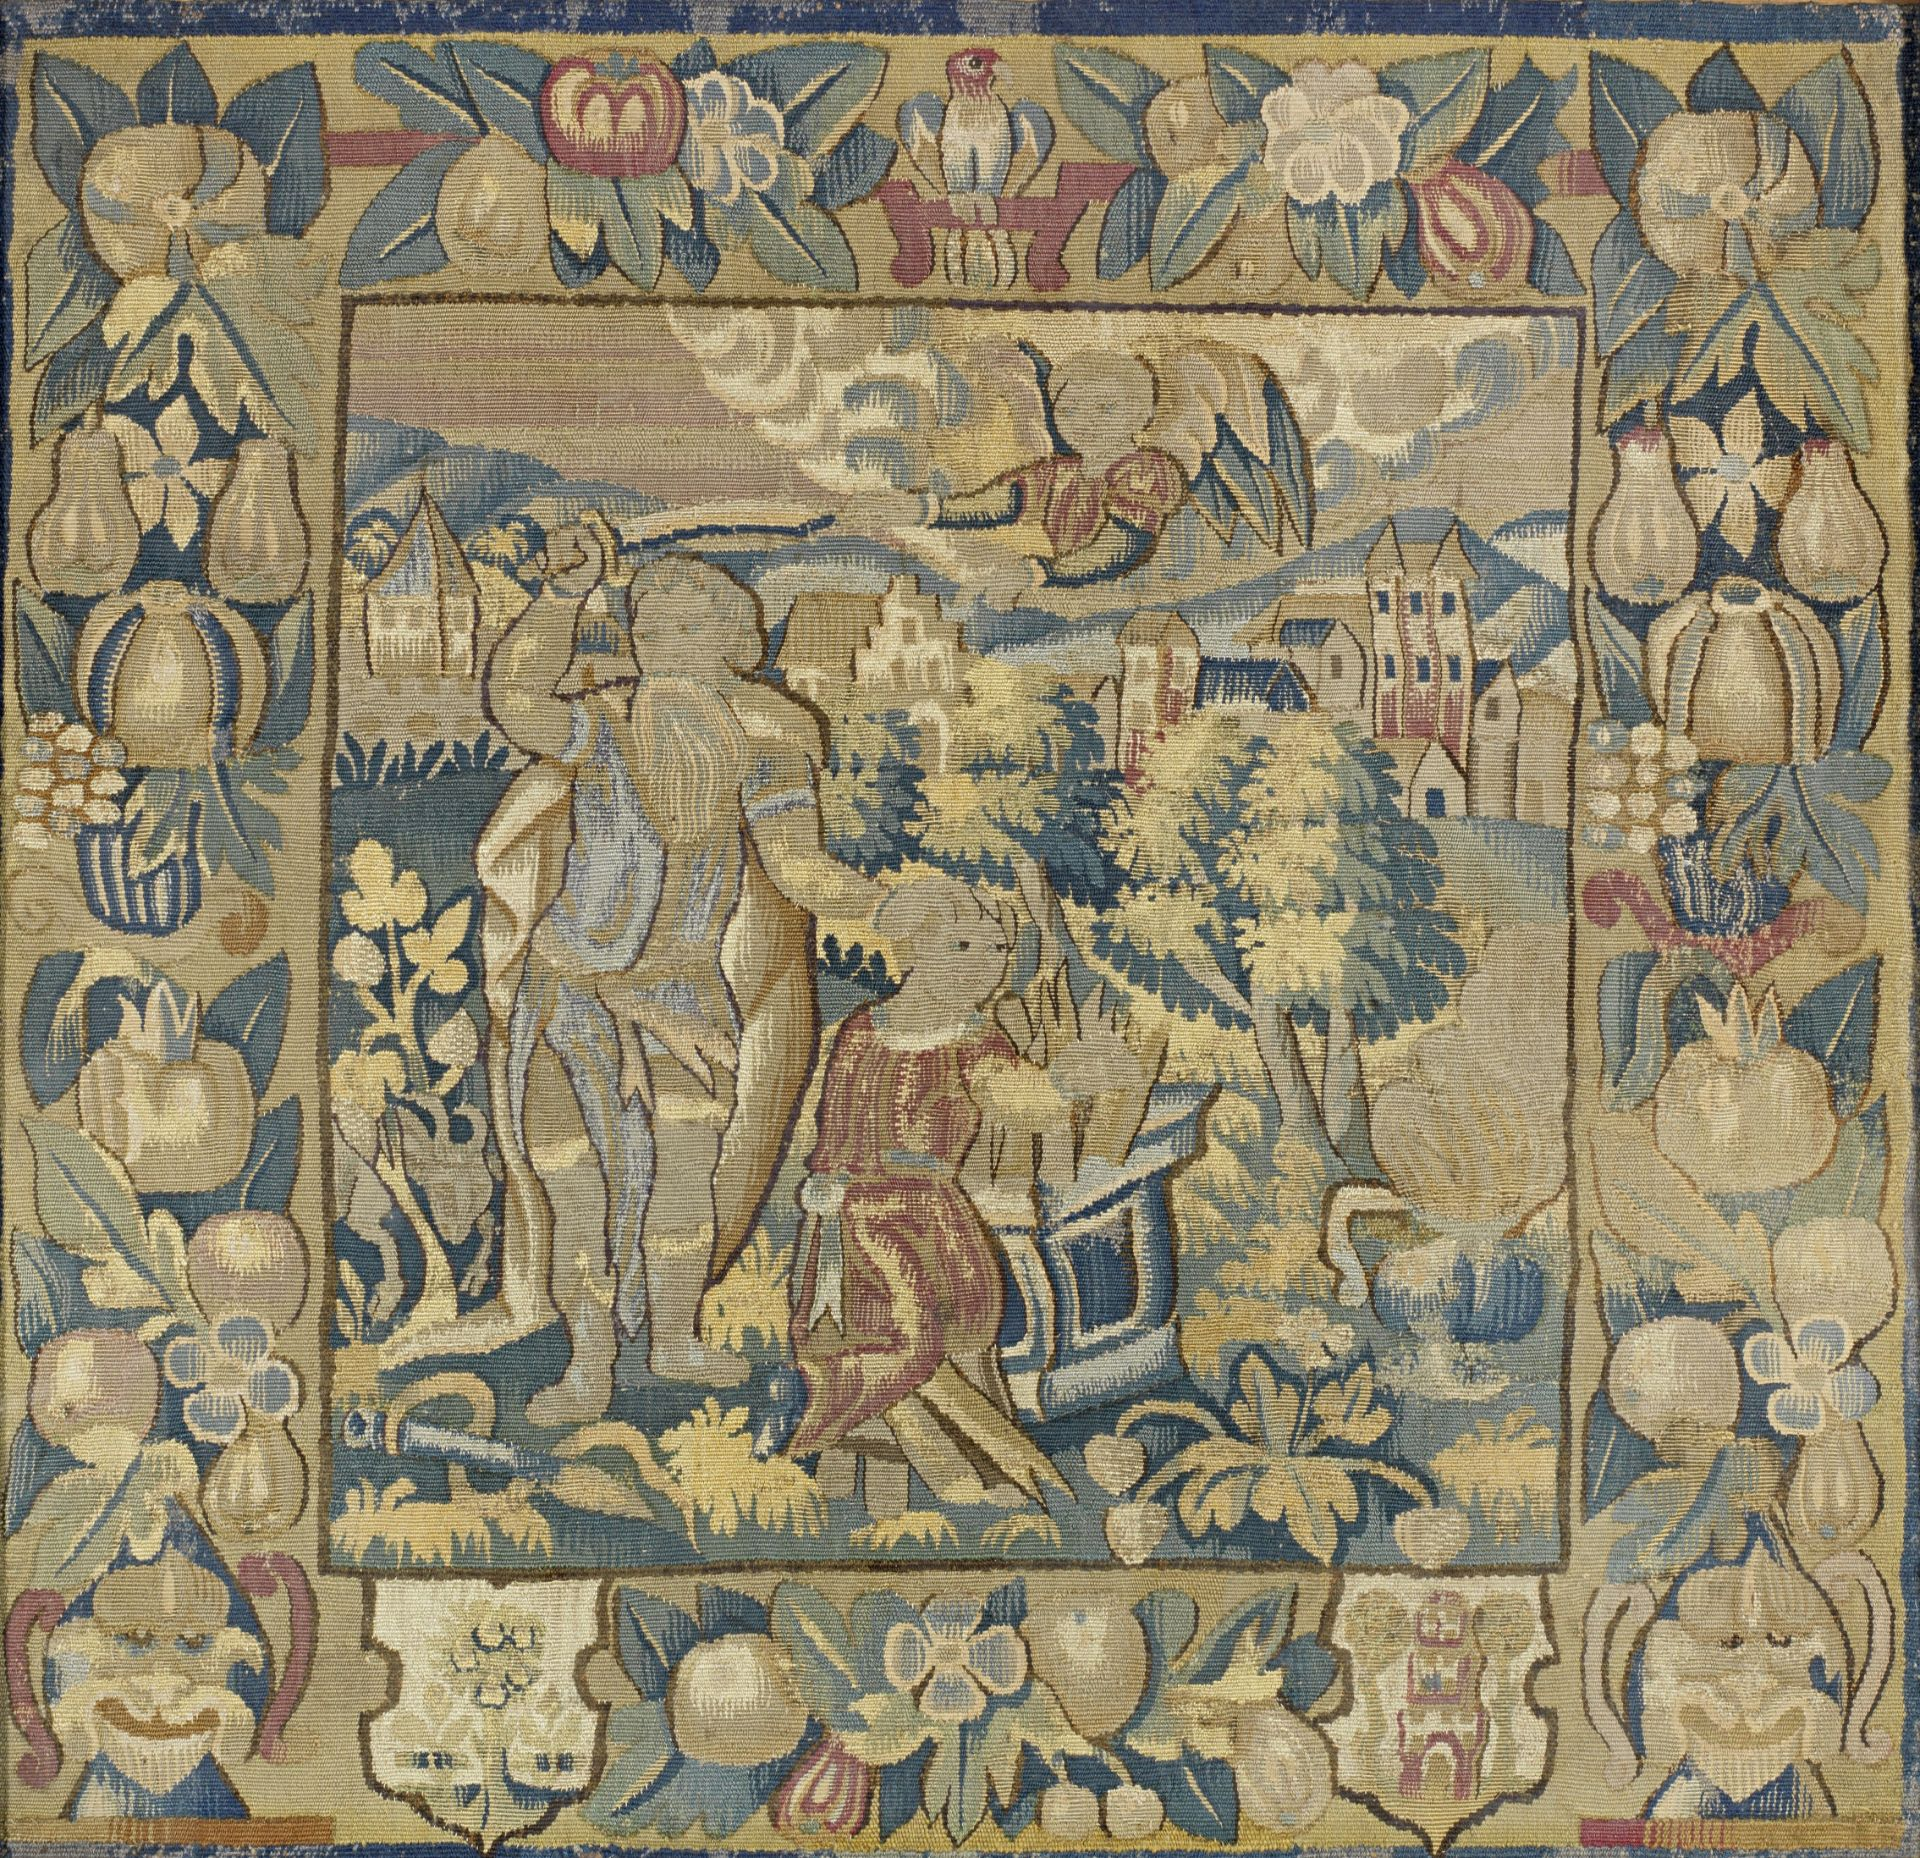 Los 74 - A rare late 16th large tapestry cushion cover, English or North European, circa 1580